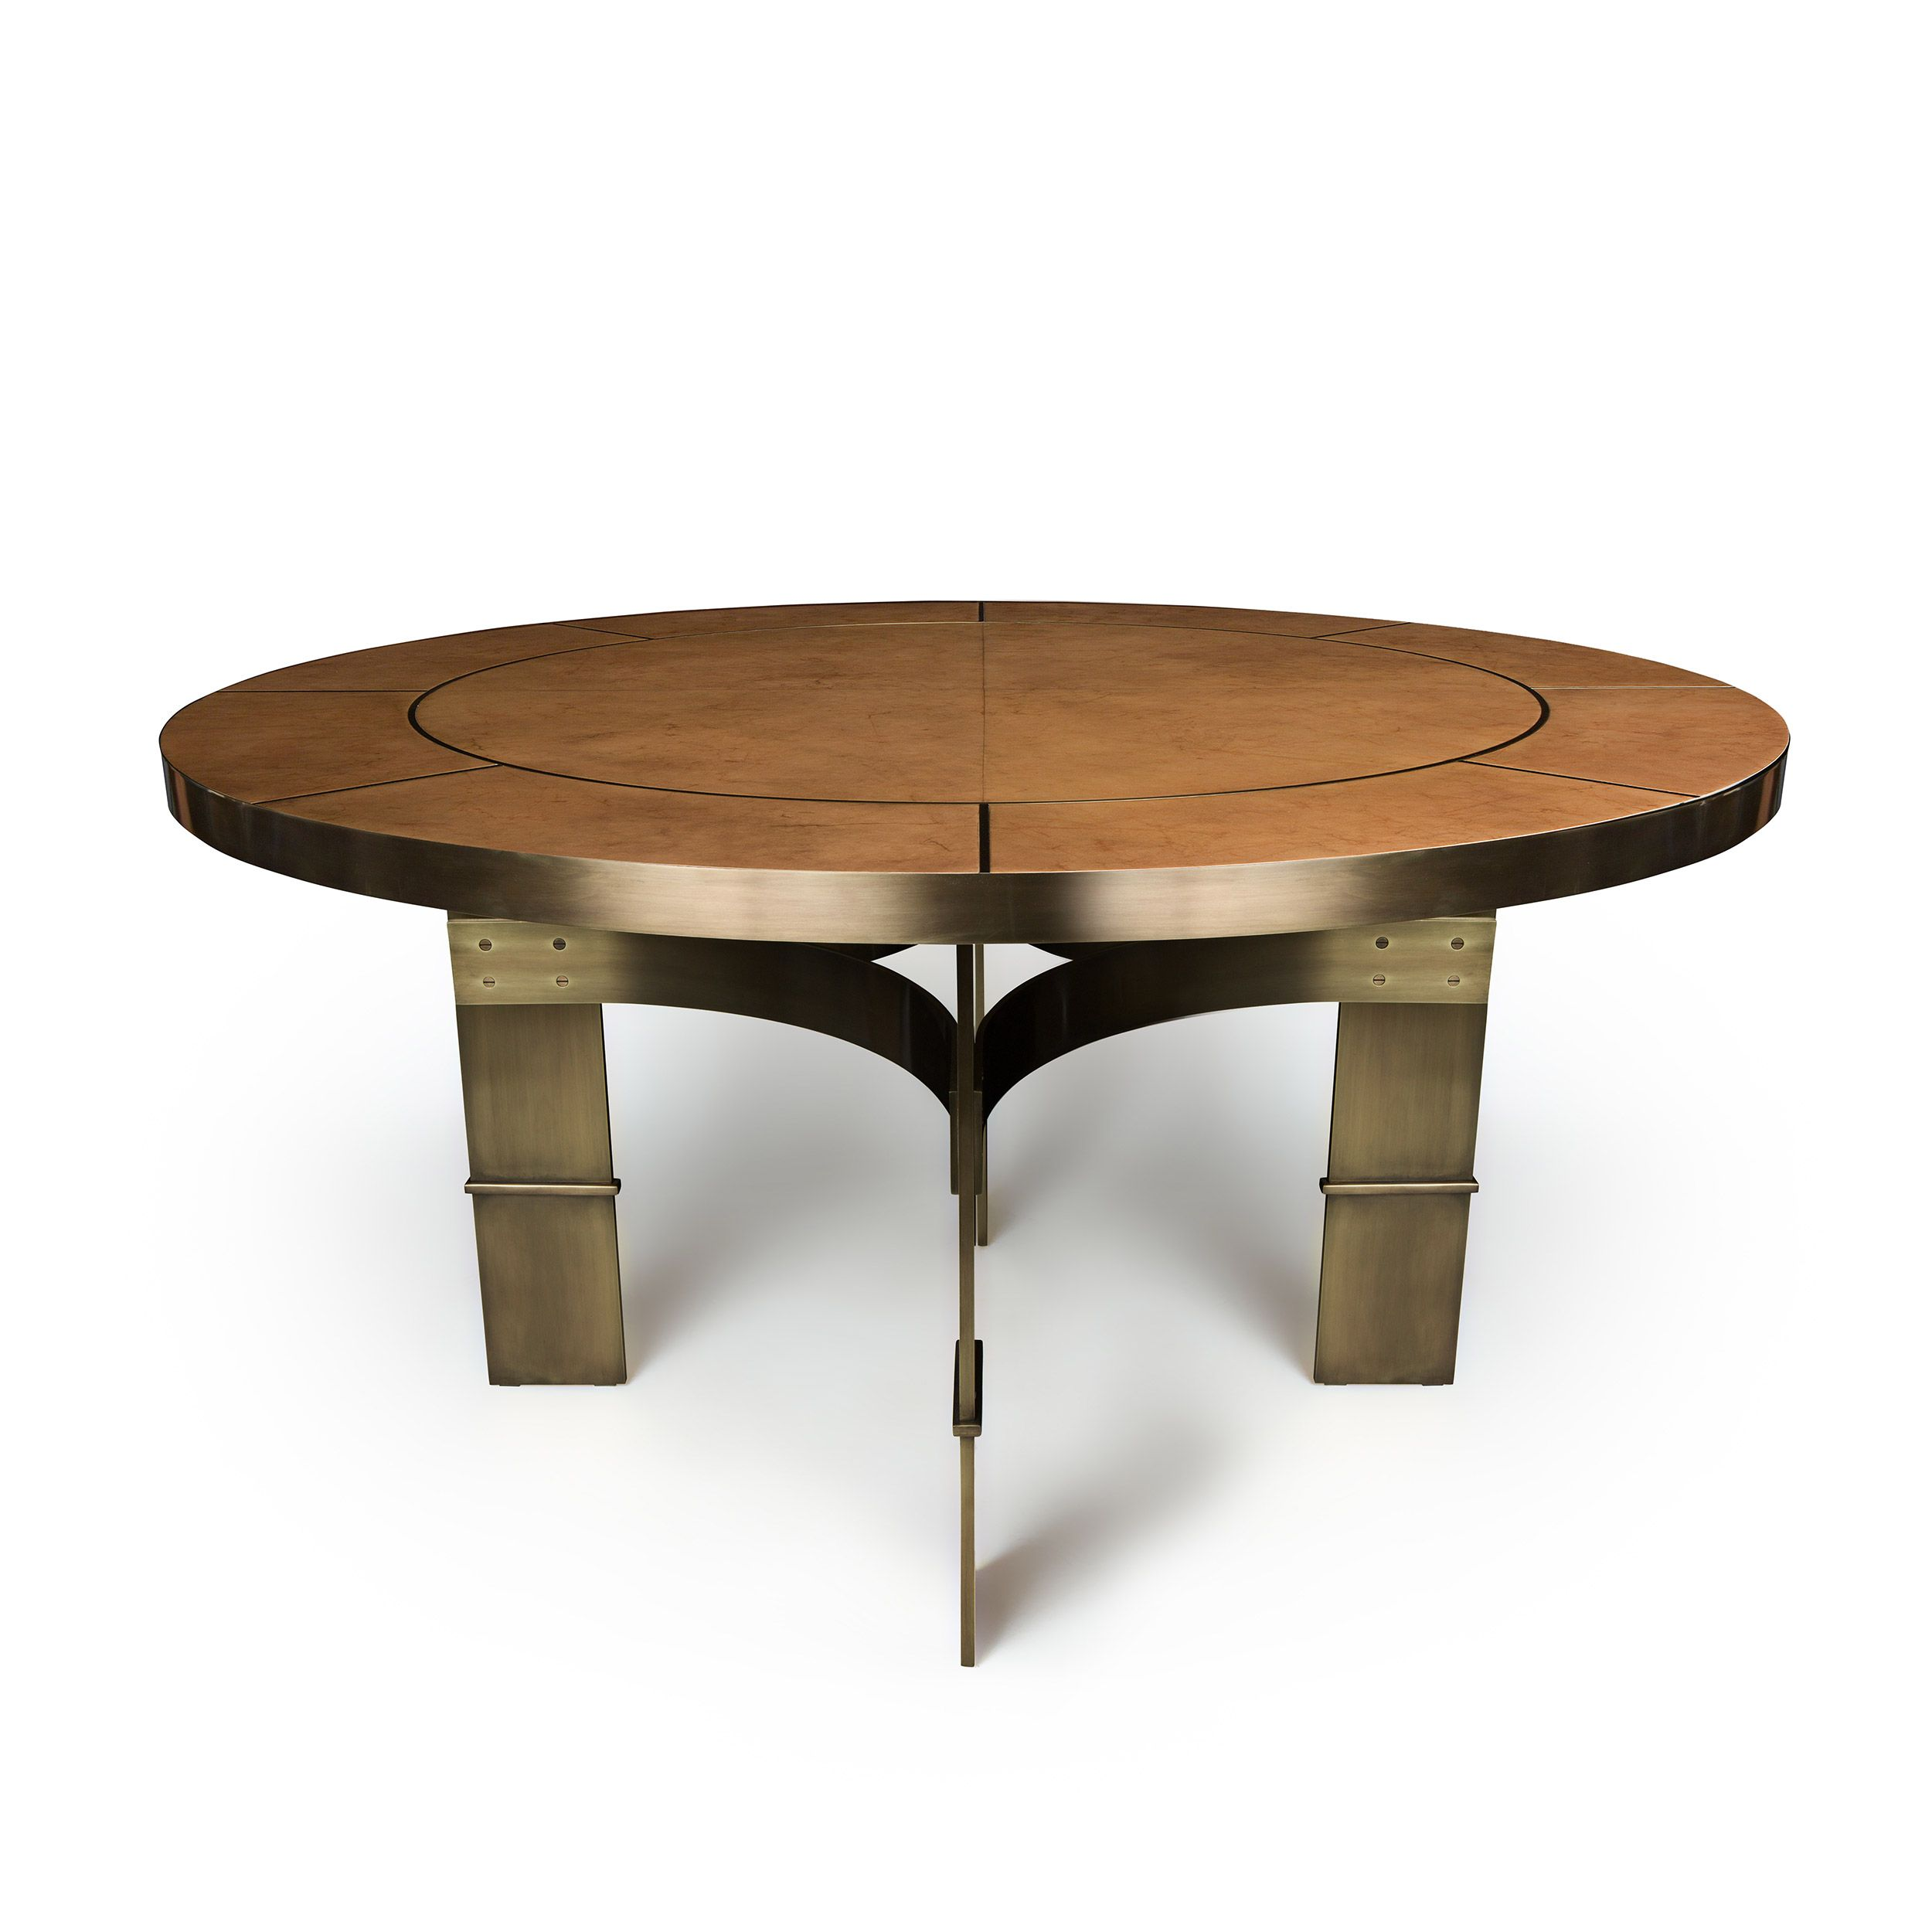 Pin By Devin Chambers On 73 Br St Table Dining Table Top Dining Table [ 2500 x 2500 Pixel ]